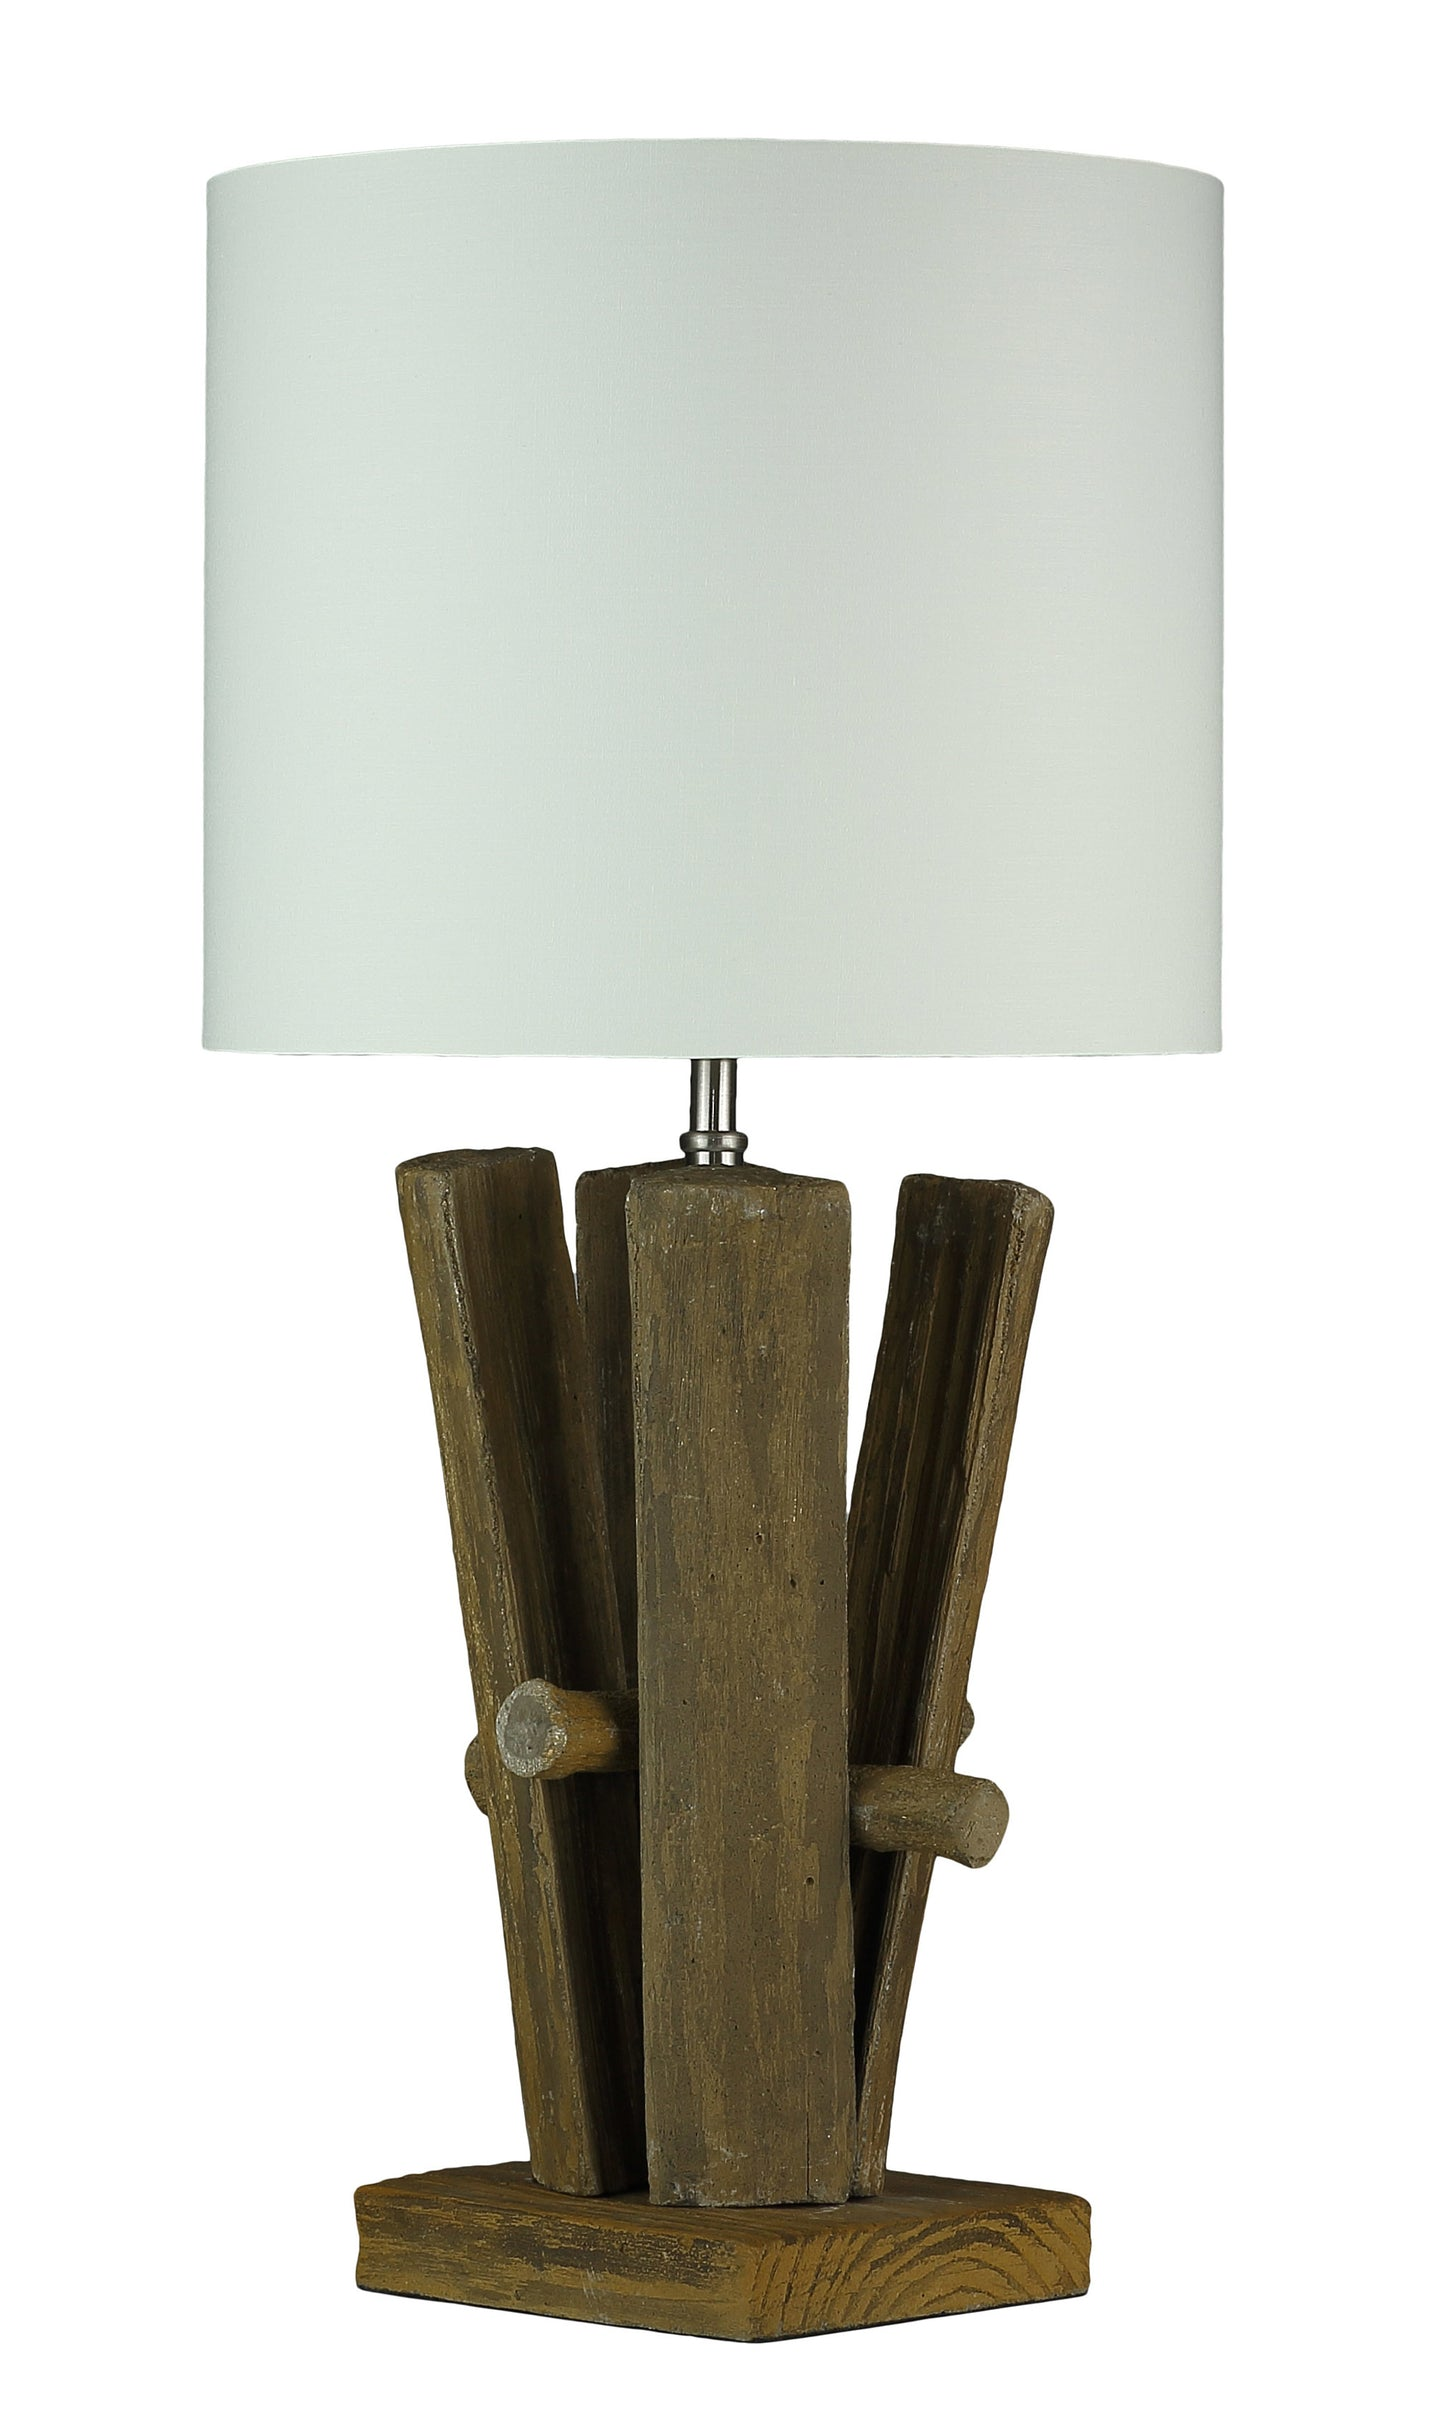 Cortesi Home Yellowstone Table Lamp with a Cream Shade